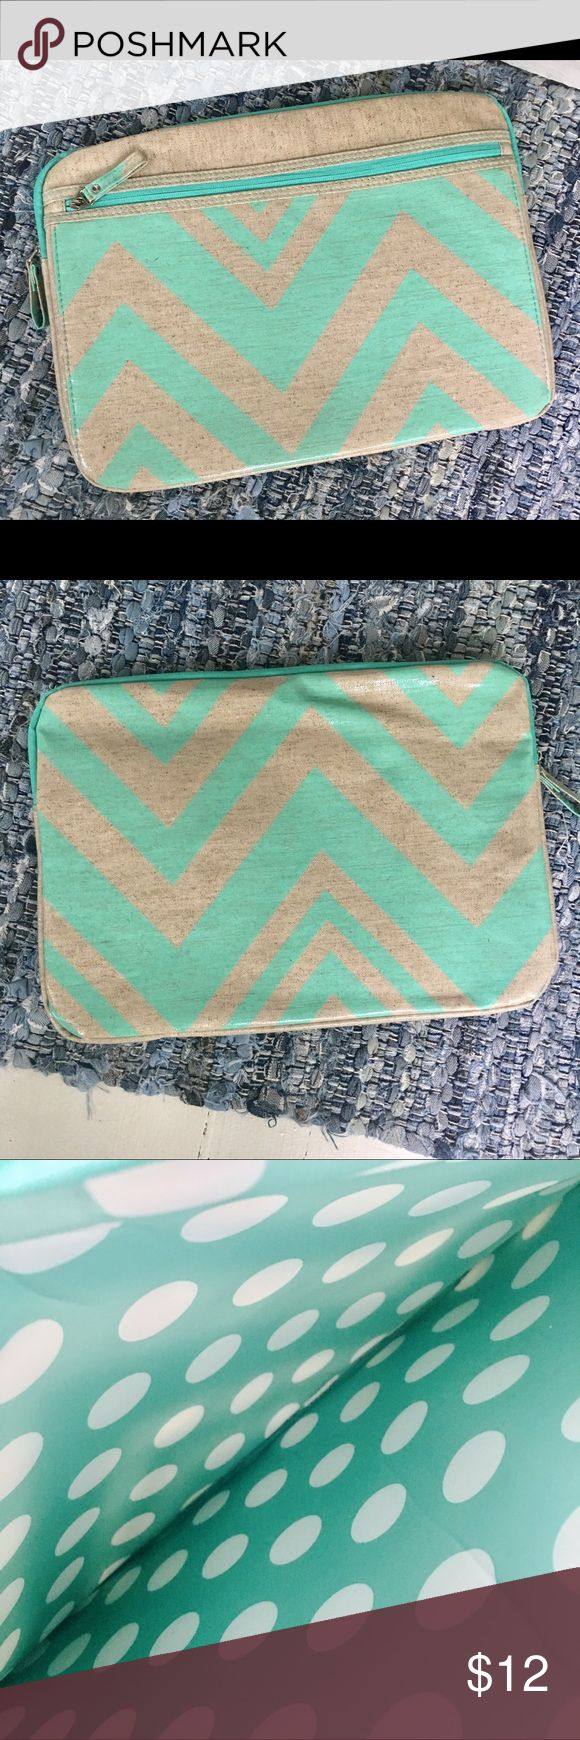 Laptop case for 15 inch laptop , brand new Beautiful laptop case , brand new never used , purchased for 15 inch MacBook . Fits up to 16 inch laptop. Zip pocket in front for extra storage . Mint green and natural fiber design and pattern , overall measurement is 16 by 11 1/2 inches .waterproof fabric Accessories Laptop Cases